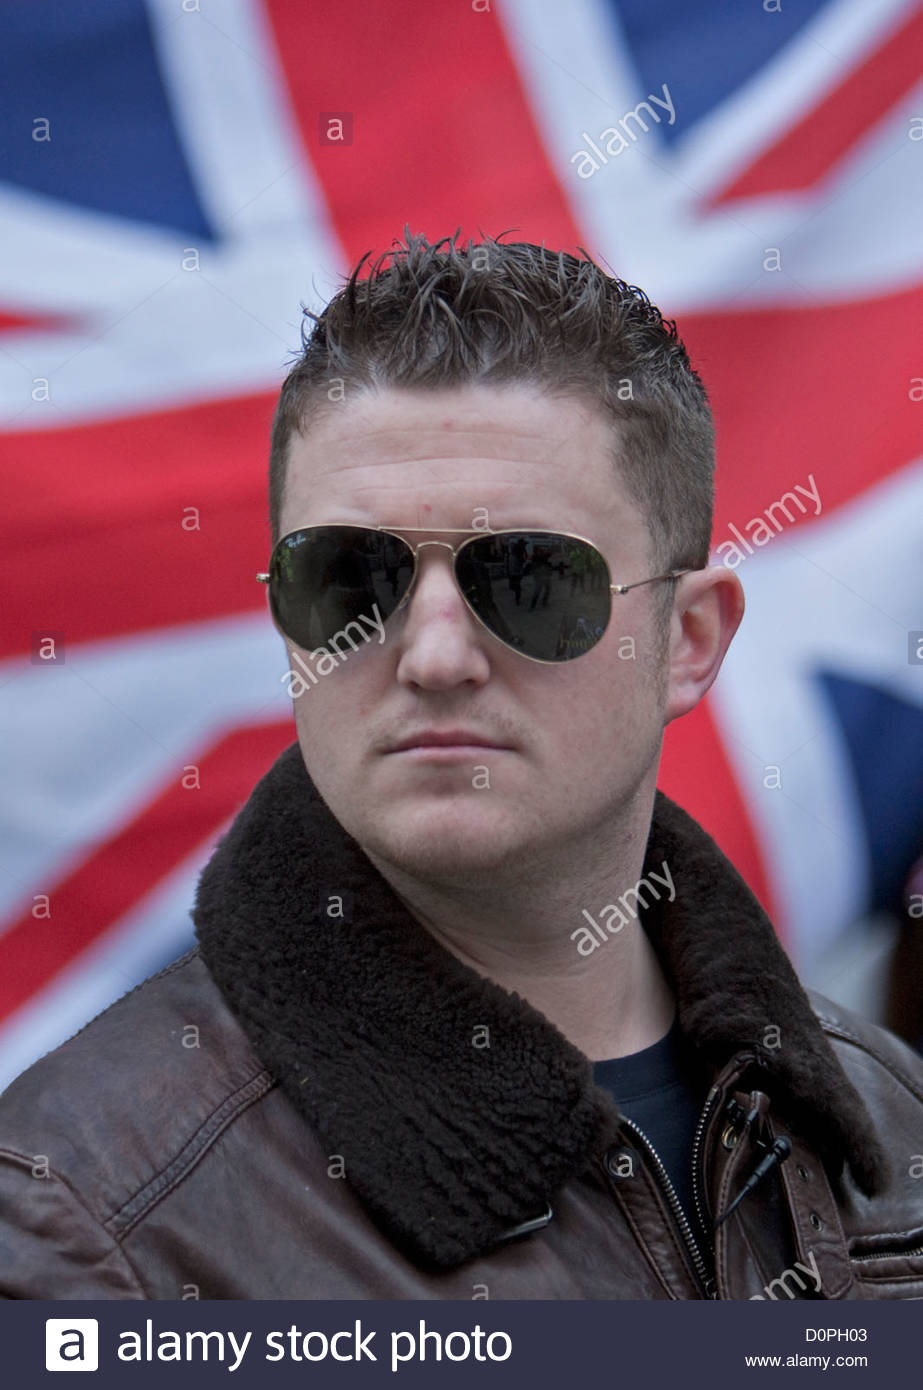 Tommy Robinson of EDL english defense league with a union flag 923x1390